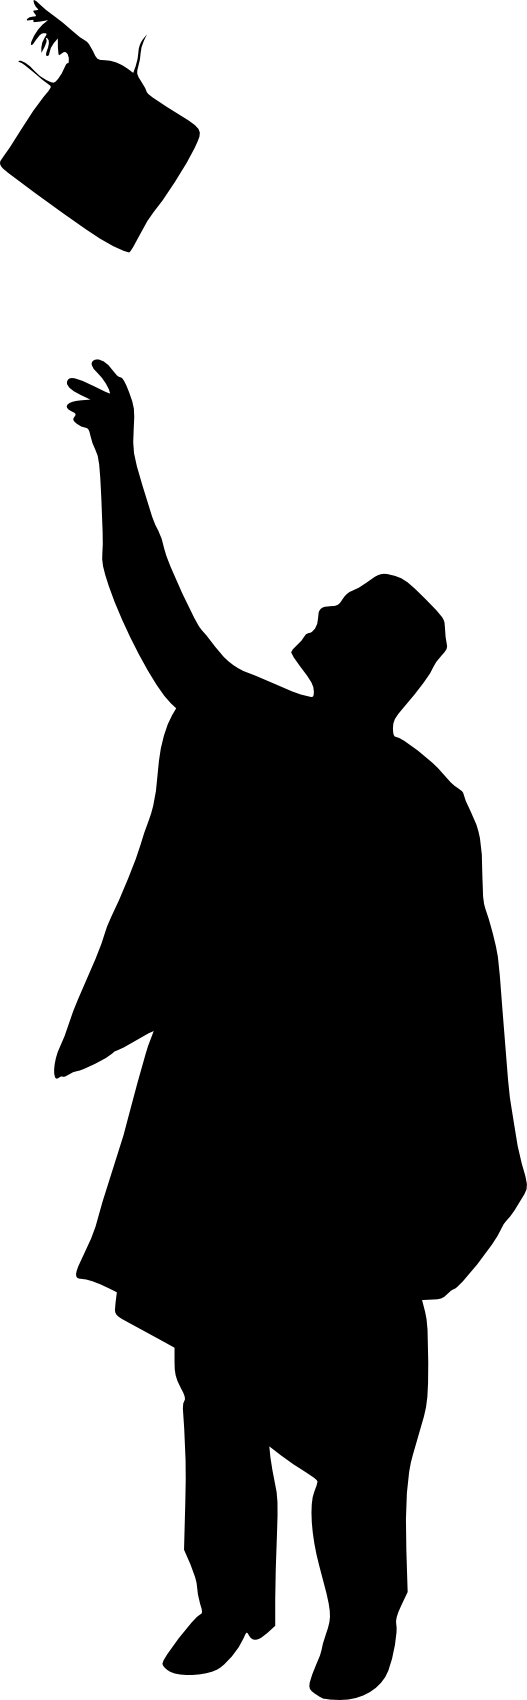 10 Graduation Silhouette (PNG Transparent).